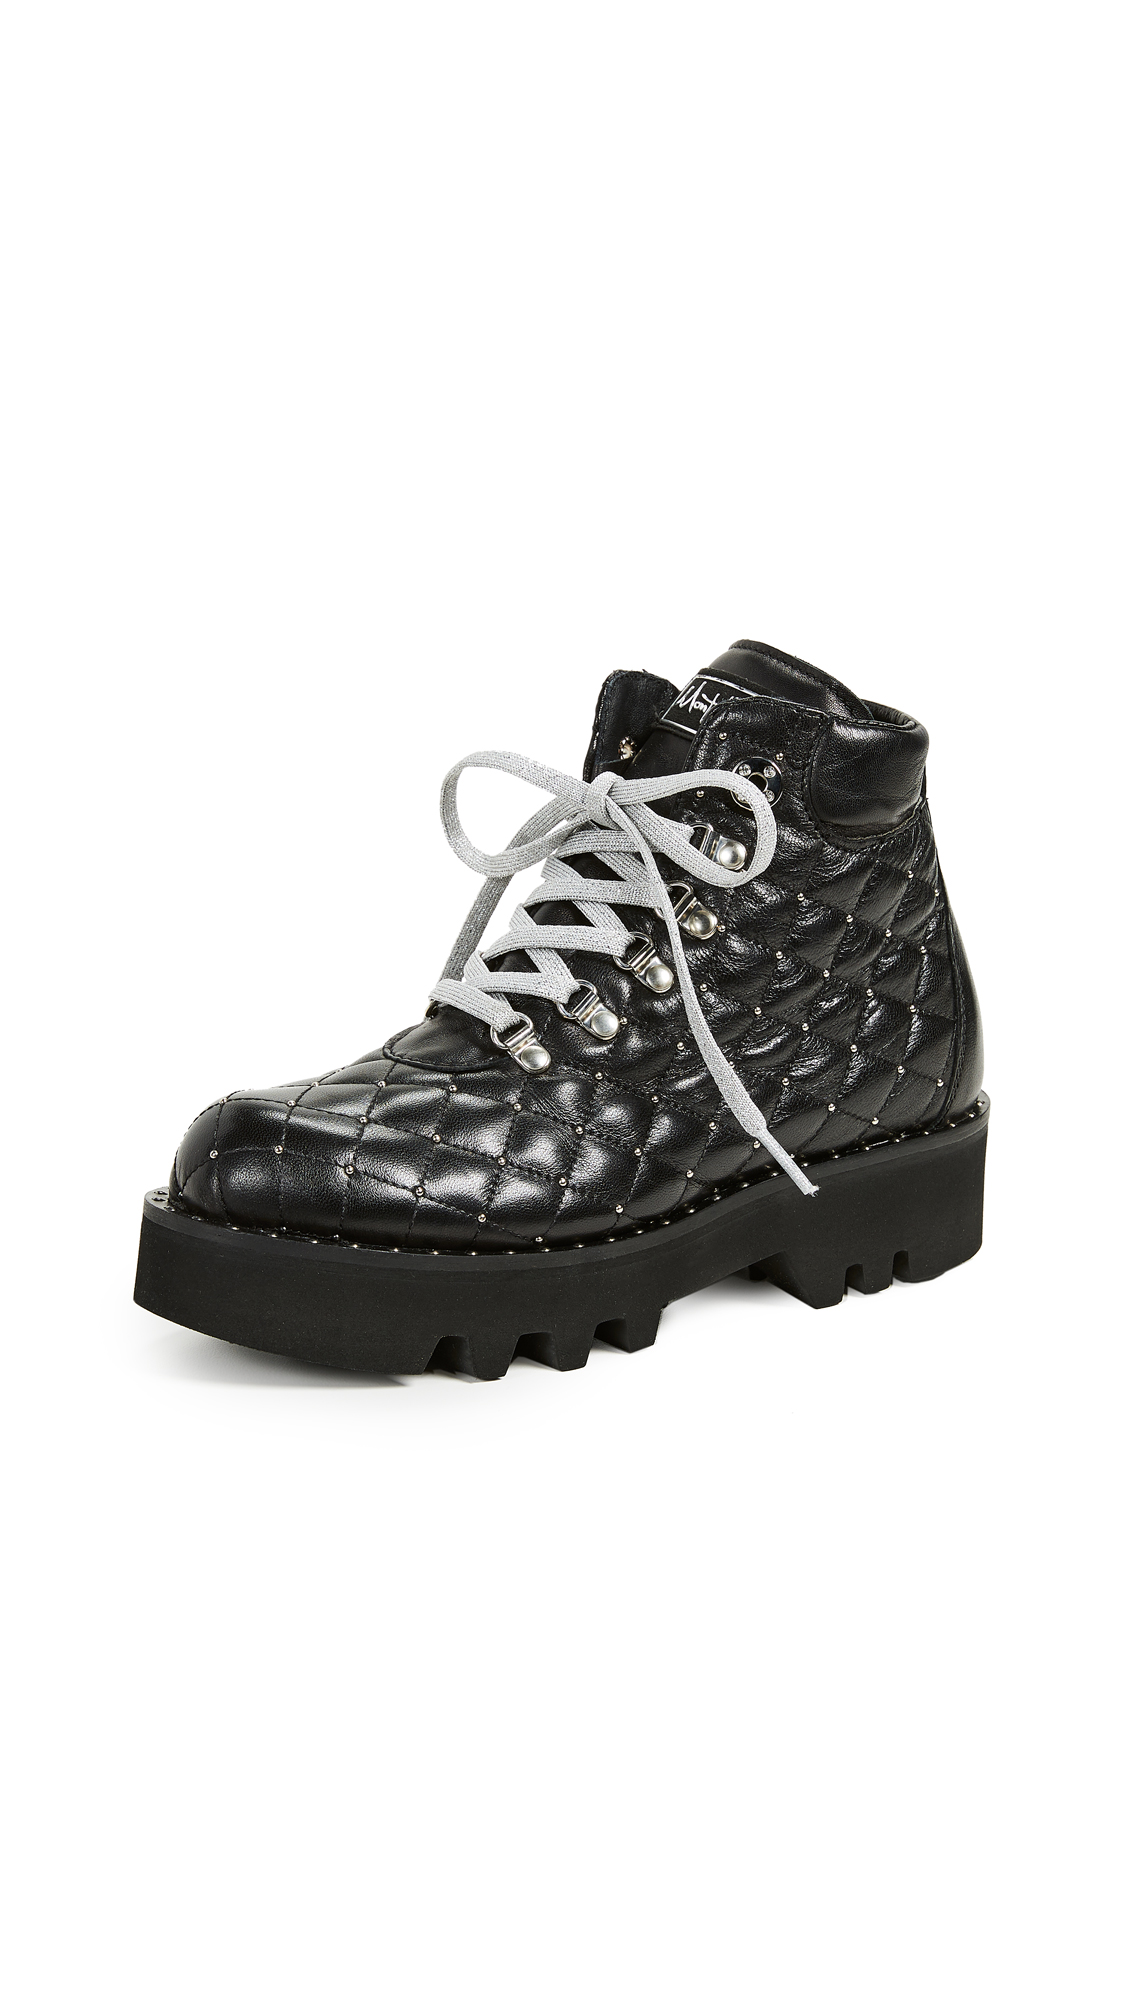 MONTELLIANA Bluma Hiker Boots in Black